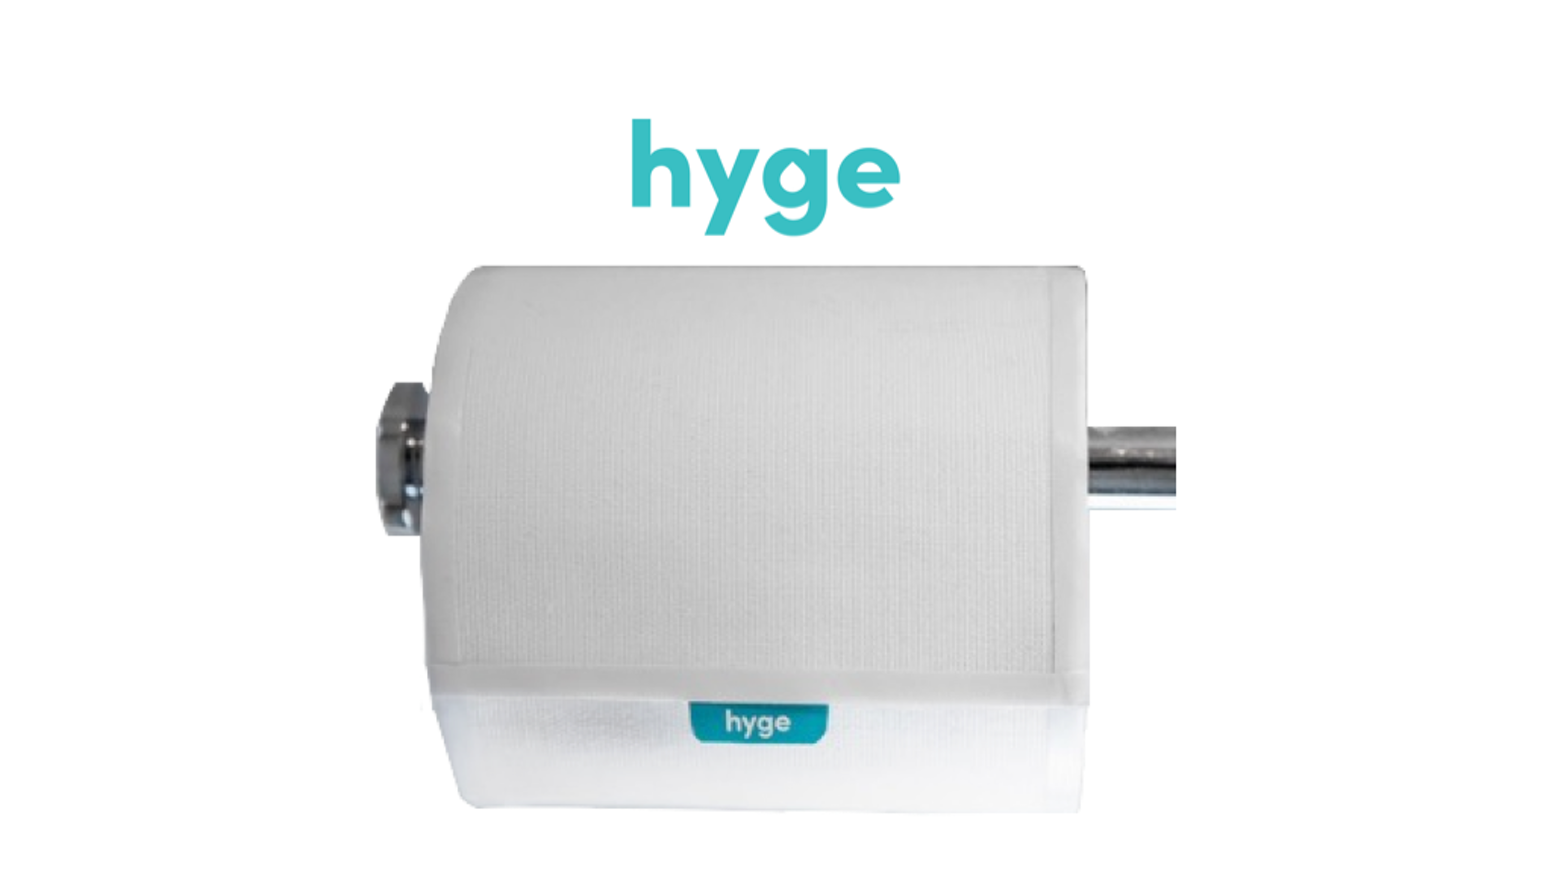 The new standard in hygiene. Uniting flushable wipes with the ease of toilet paper, designed to fit conveniently into your bathroom.